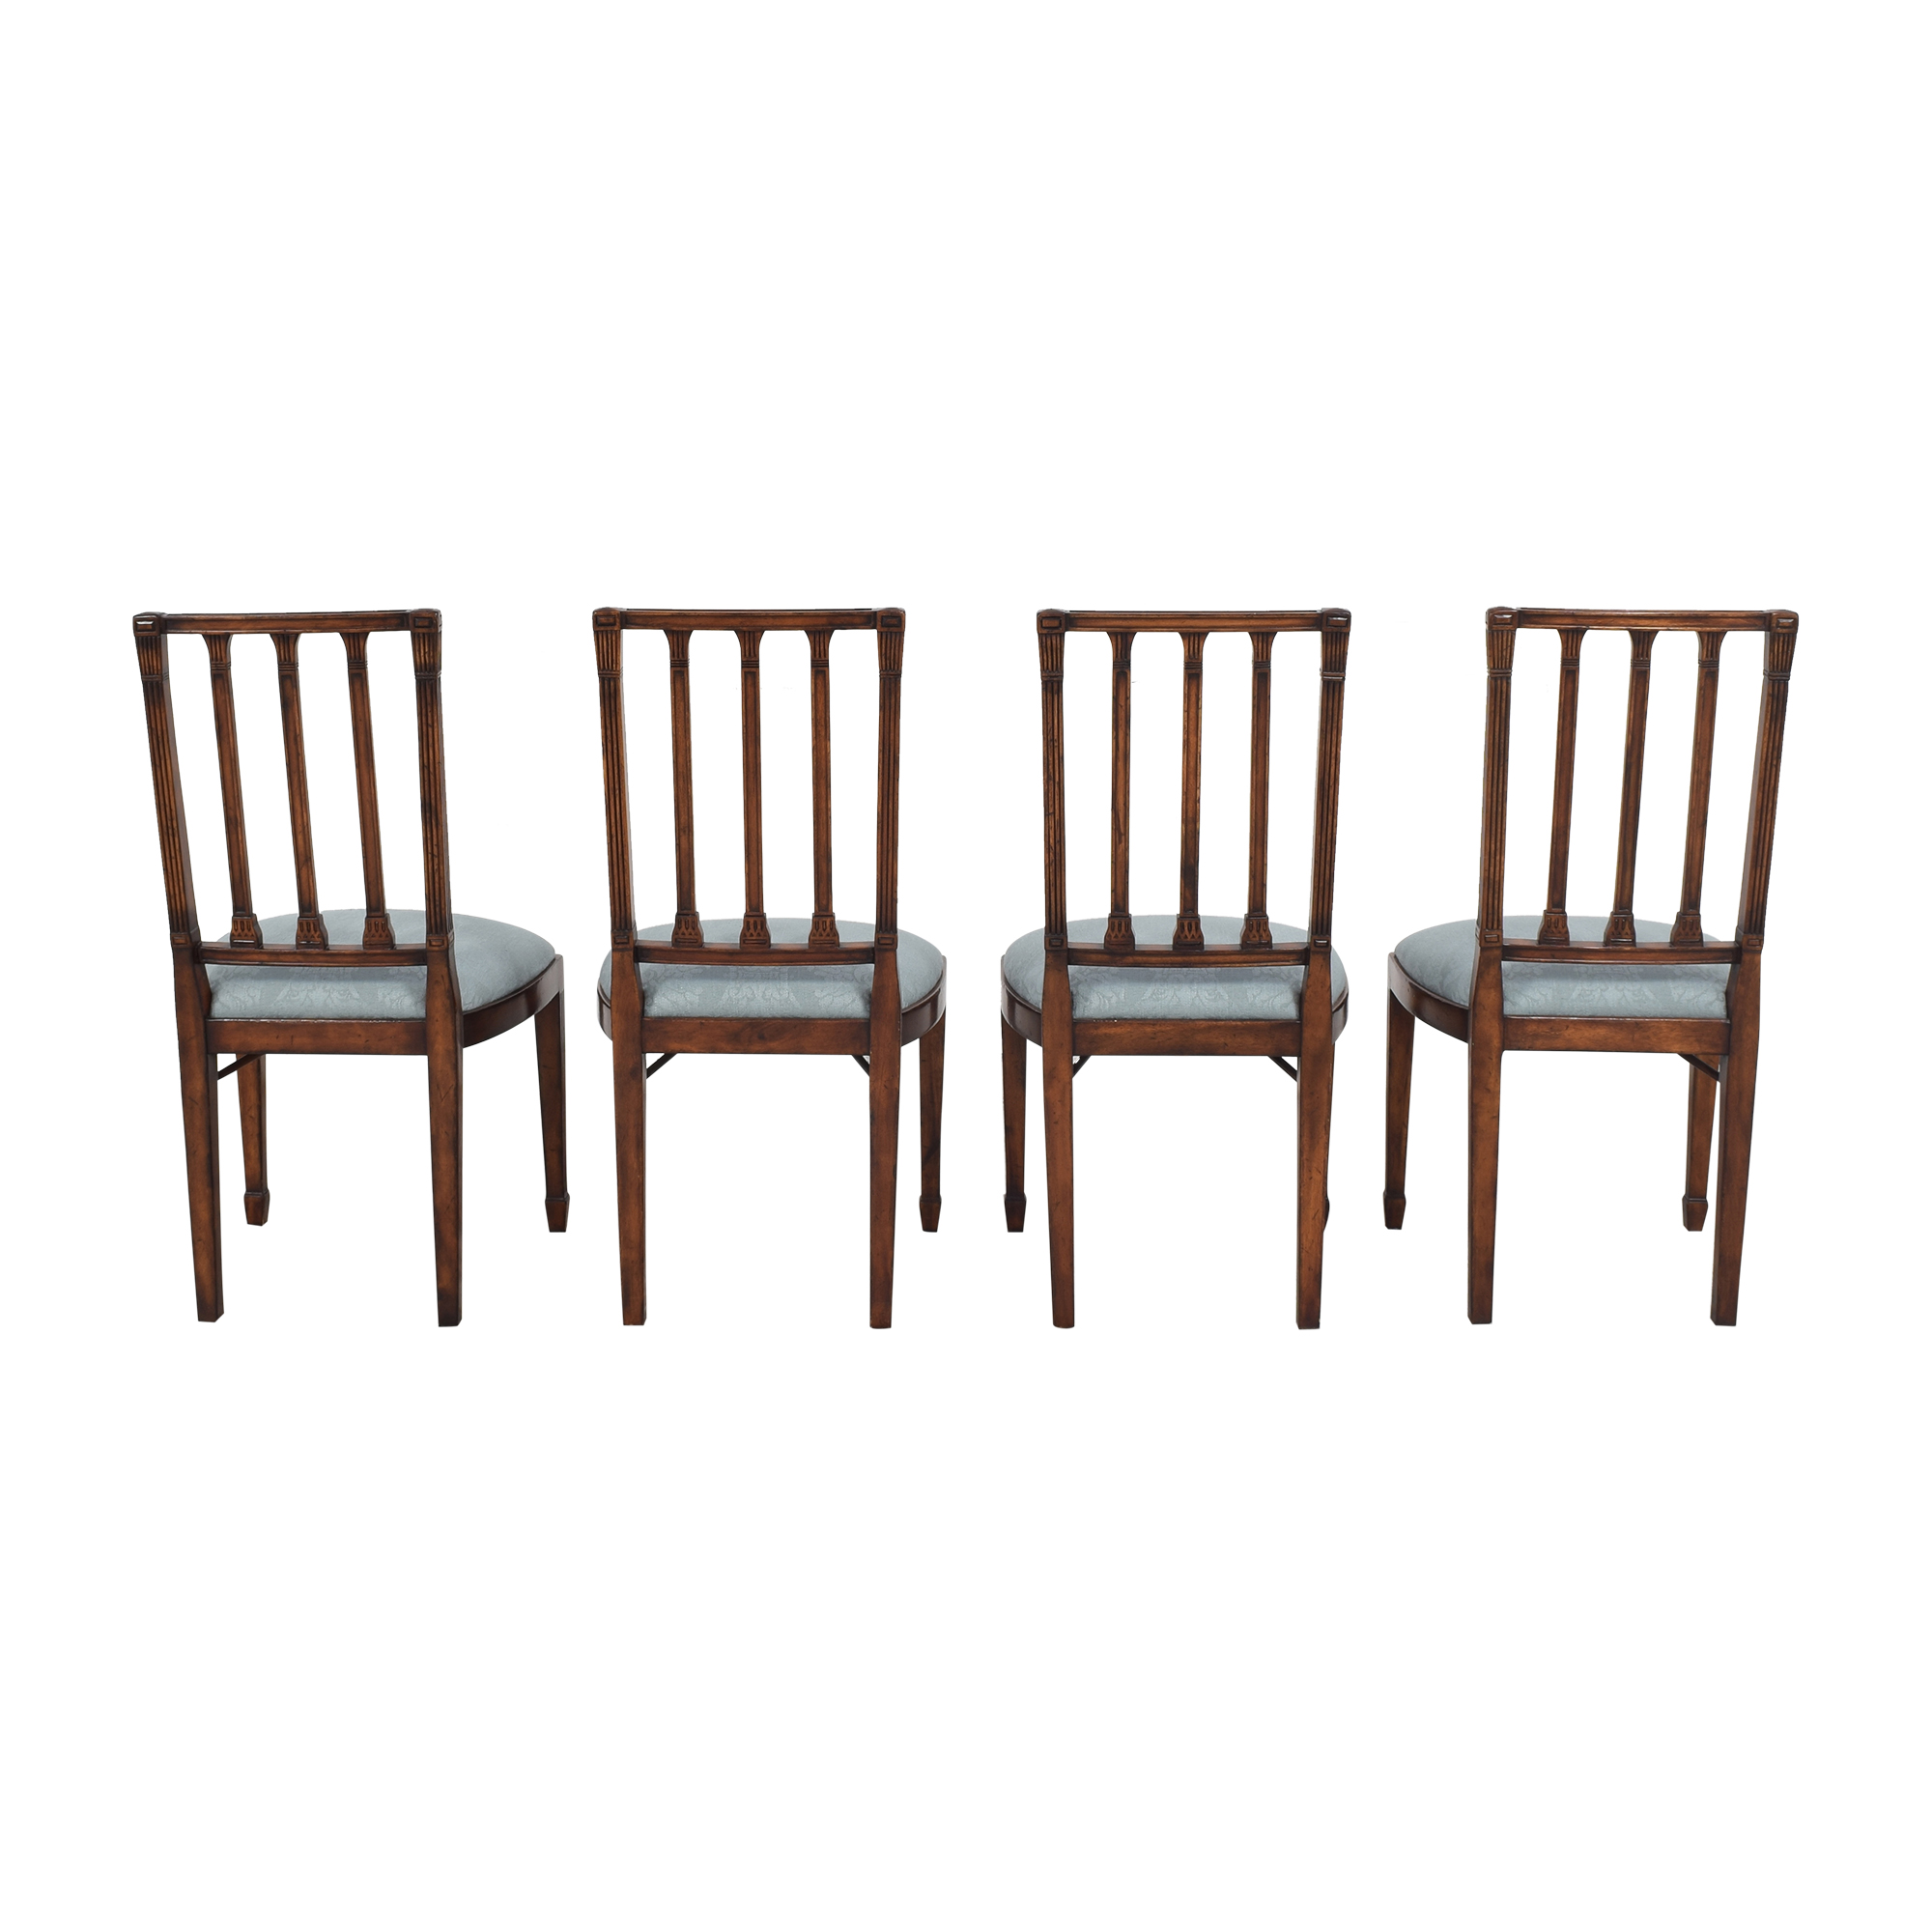 English Country Home English Country Home Upholstered Dining Chairs nj